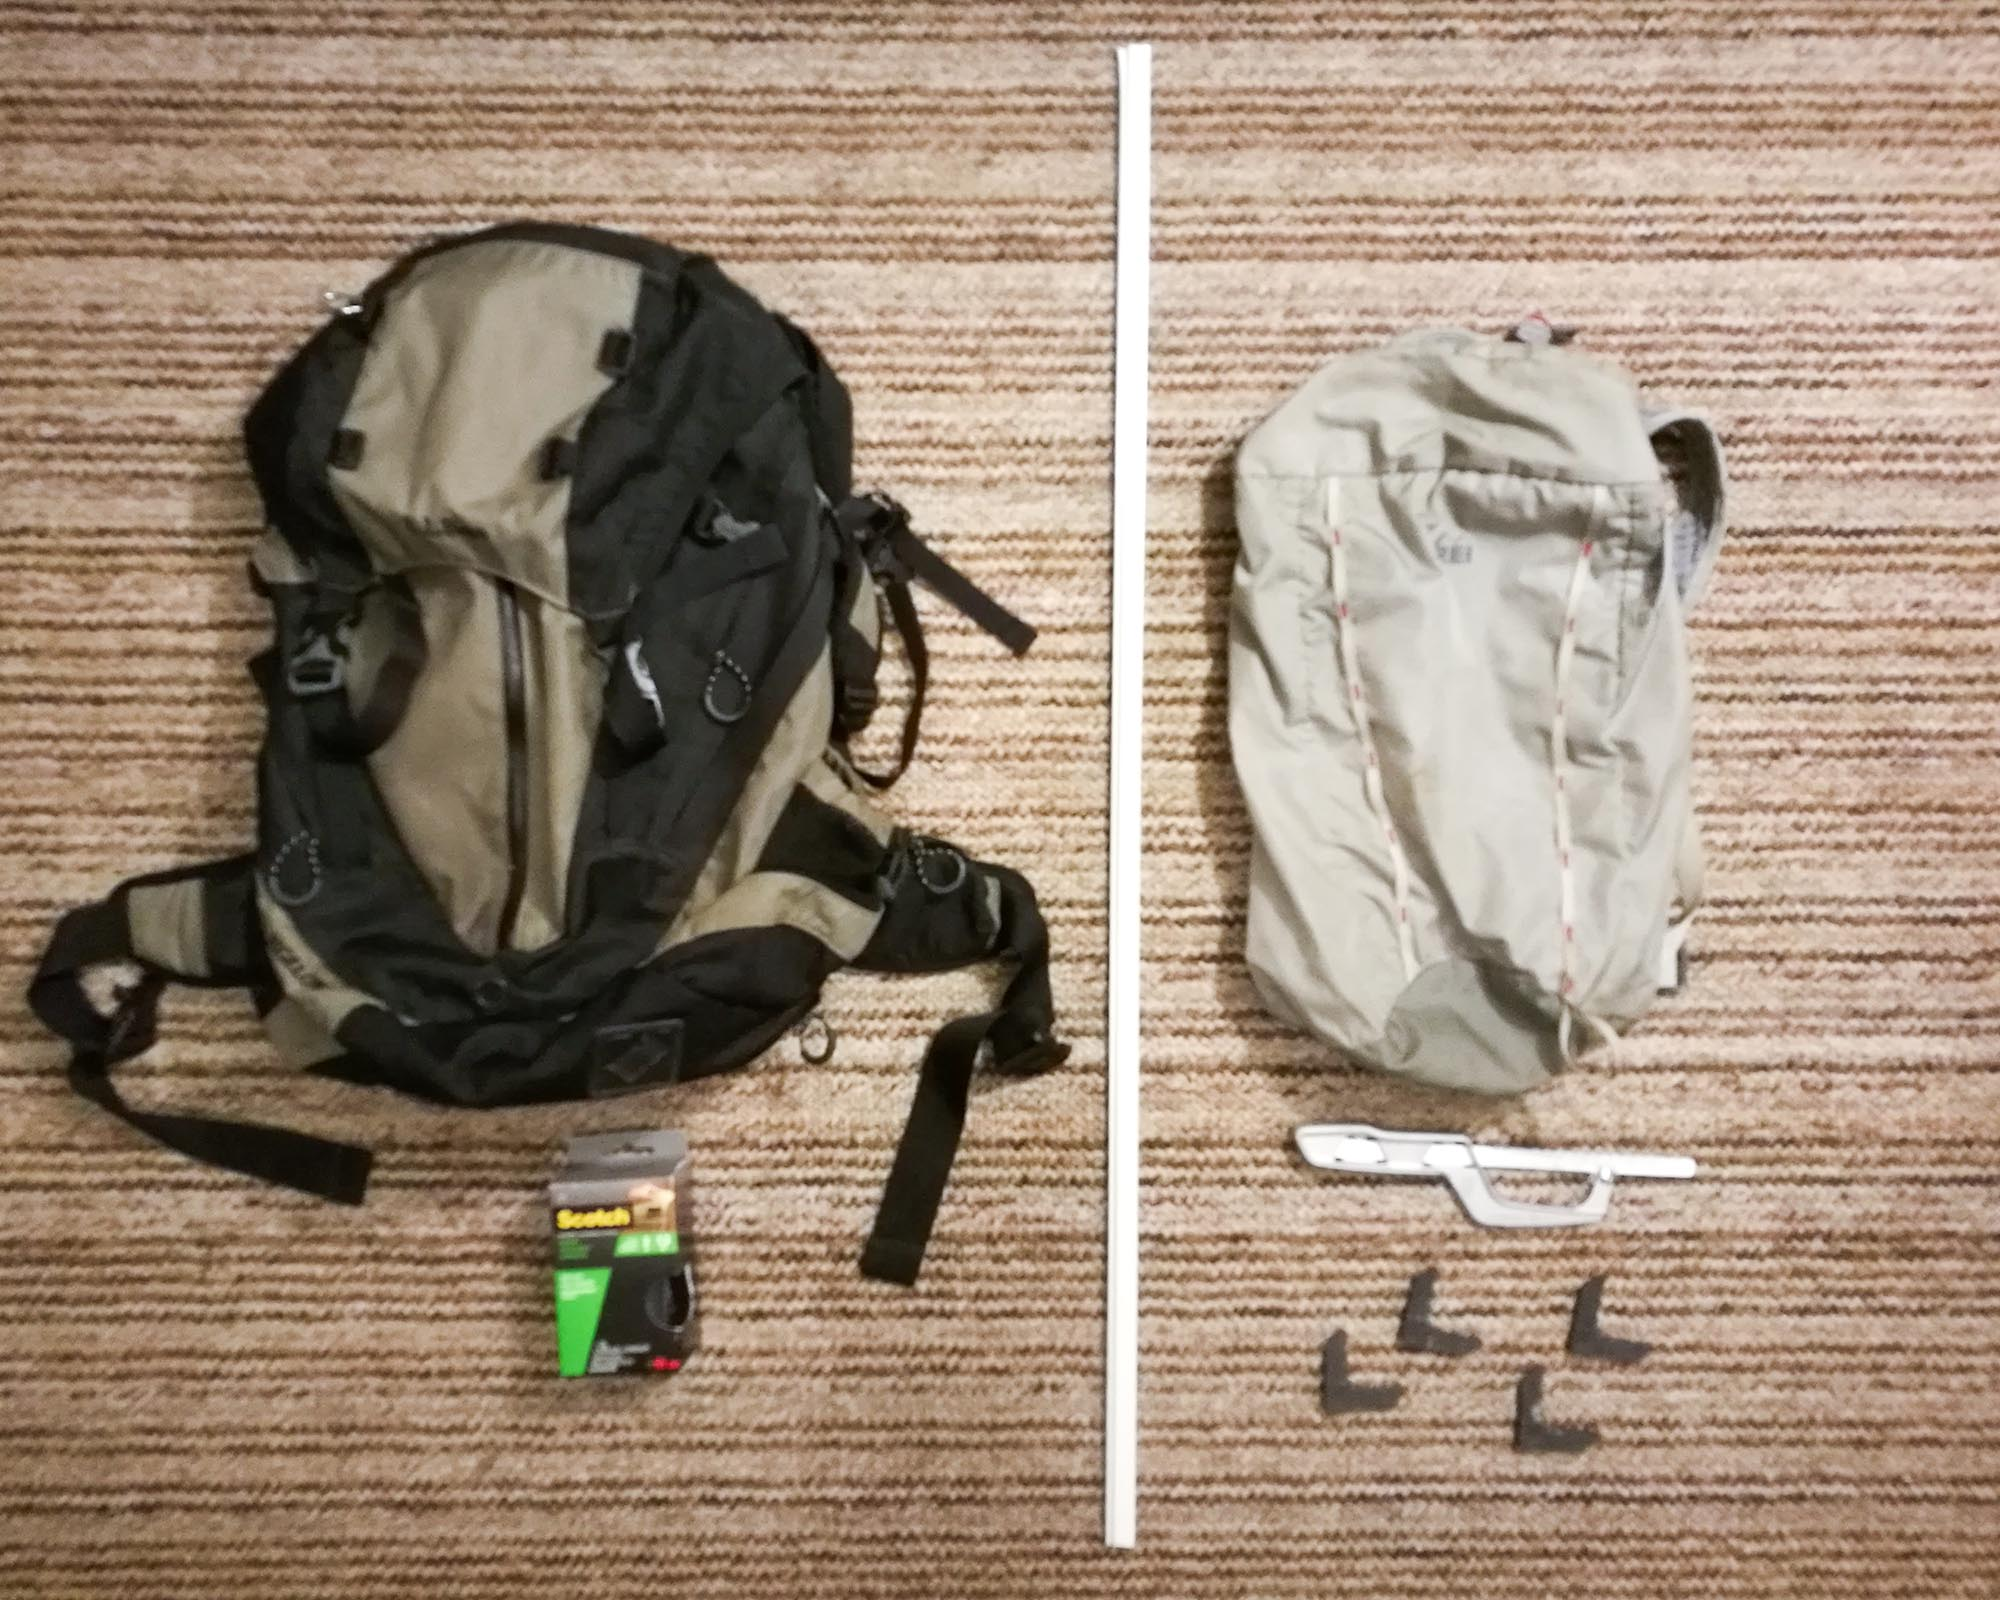 Photo of materials: LL Bean 27L Daypack for hip belt, roll of velcro, frame, REI 18L Flash Pack, metal handsaw, and frame connectors